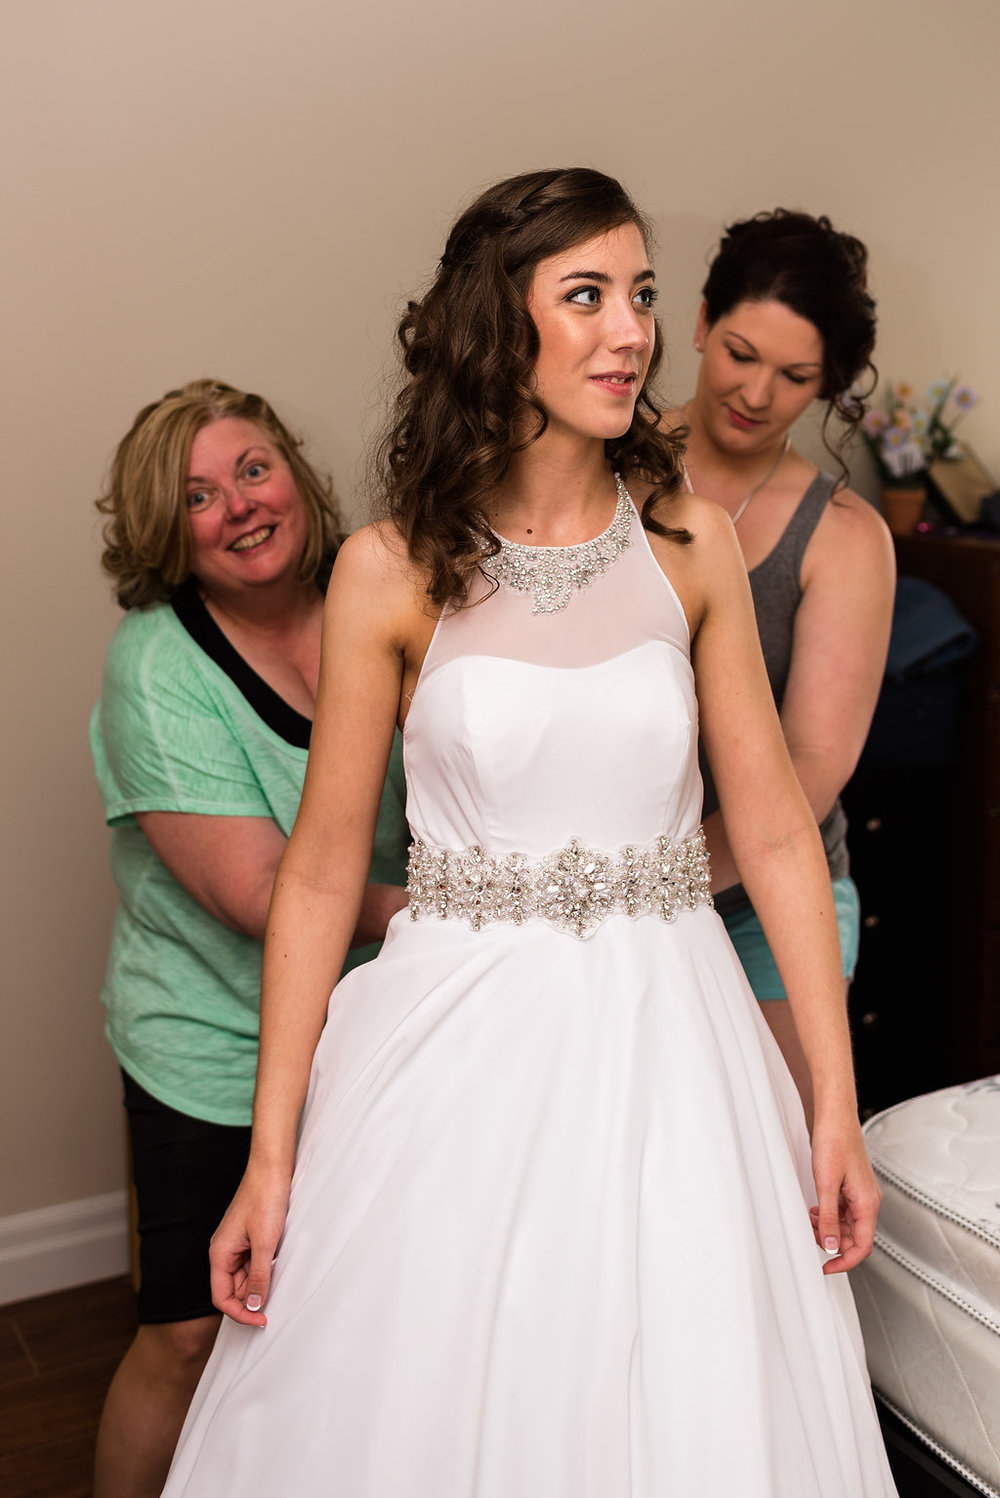 grace&gelmarwedding-34.jpg